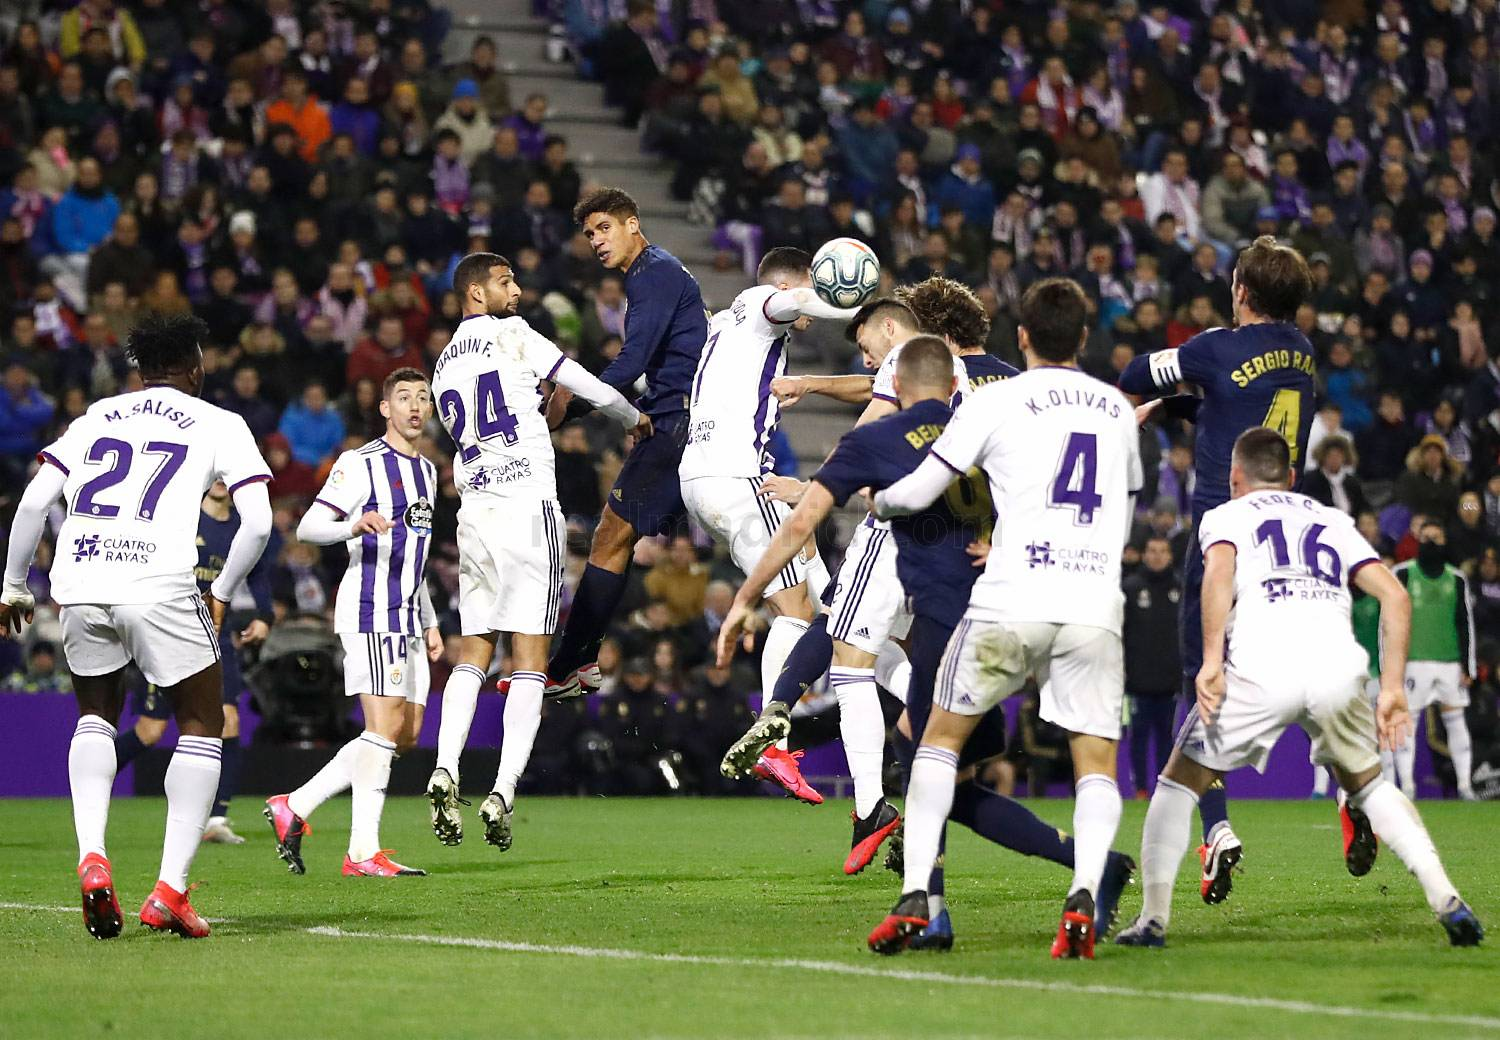 Real Madrid - Valladolid - Real Madrid - 26-01-2020